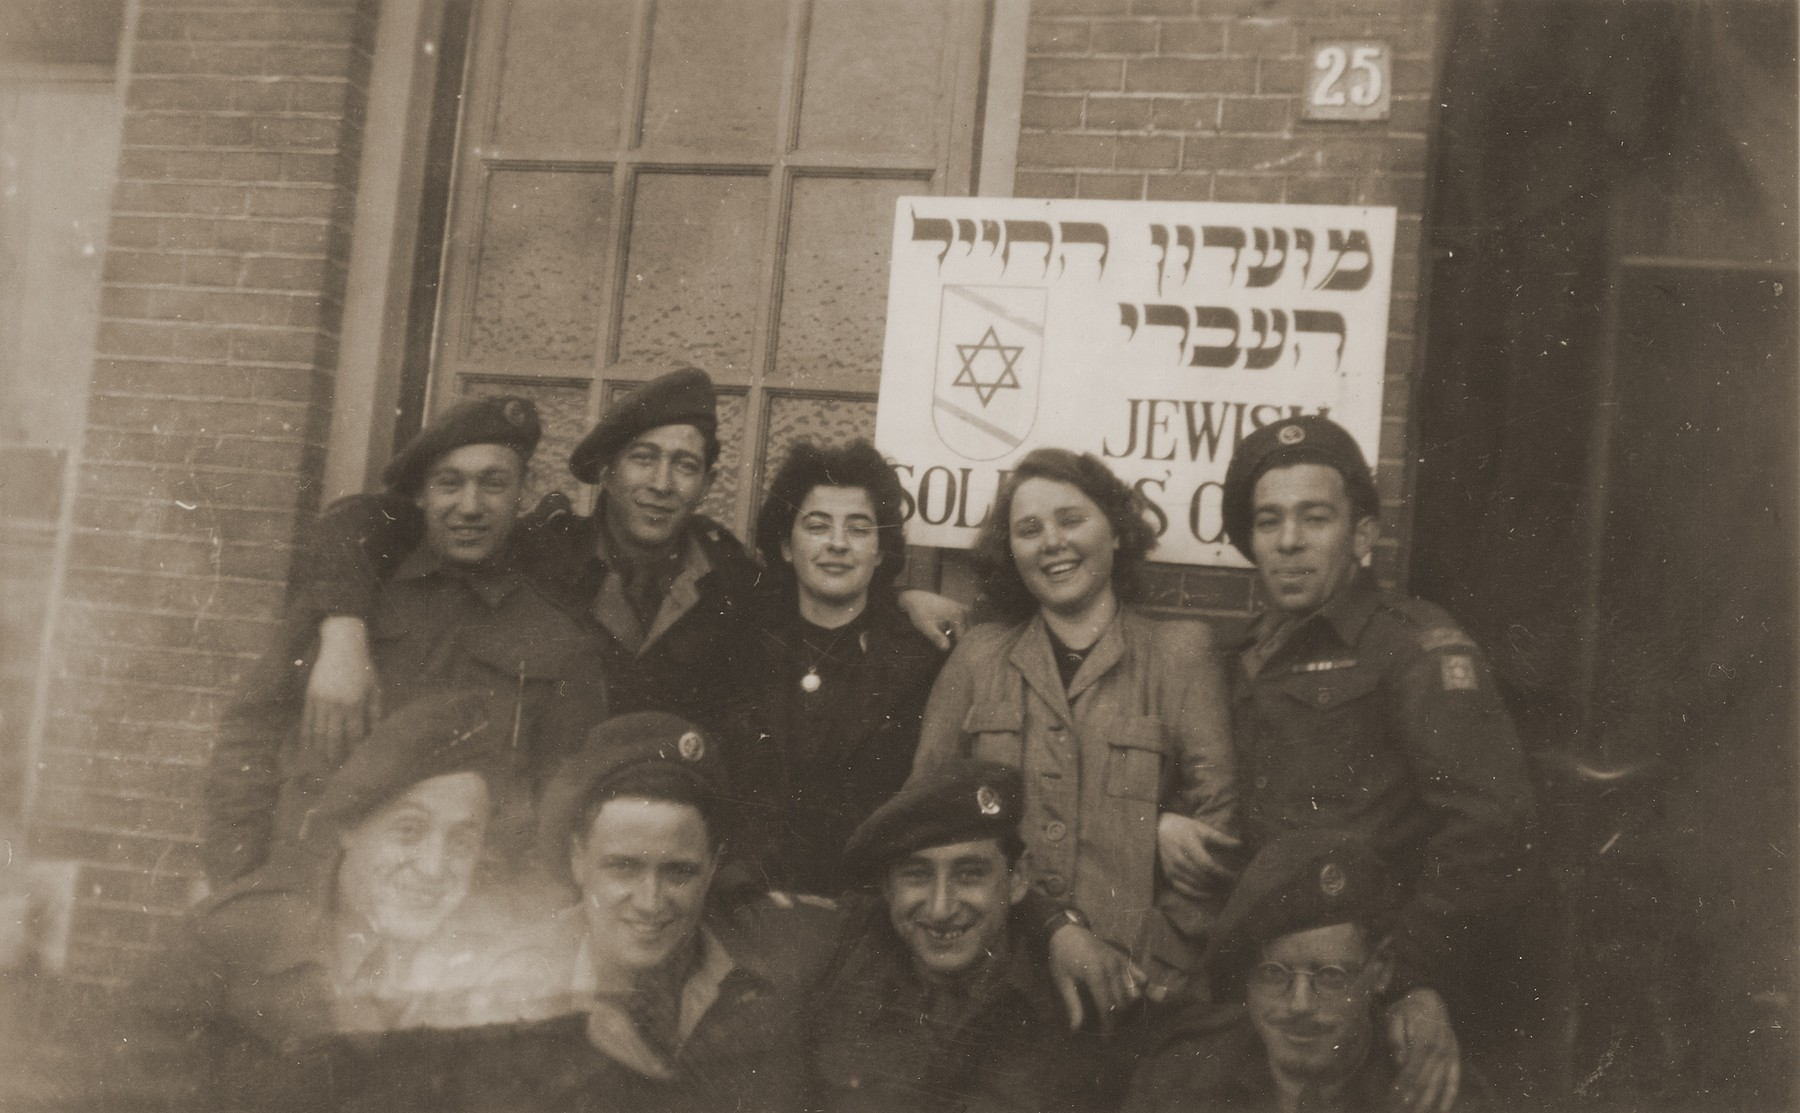 Group portrait of members of the Jewish Brigade in front of the Jewish soldiers' club in Eindhoven, Holland.  Among those pictured is Hersh Makowski  (front center).